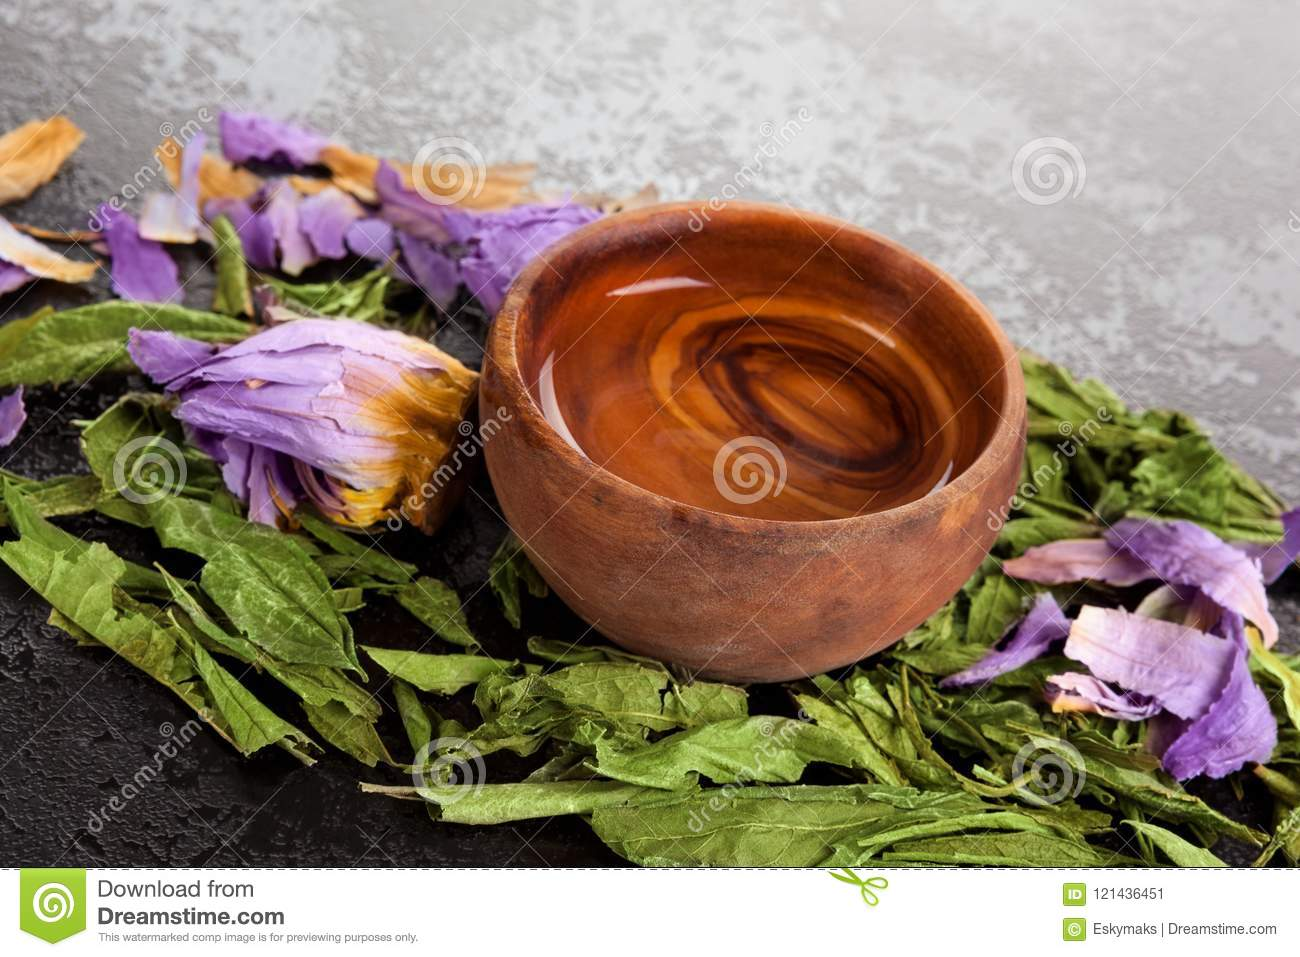 Dried blue lotus flower with dream herbs stock image image of dried blue lotus flower with dream herbs mightylinksfo